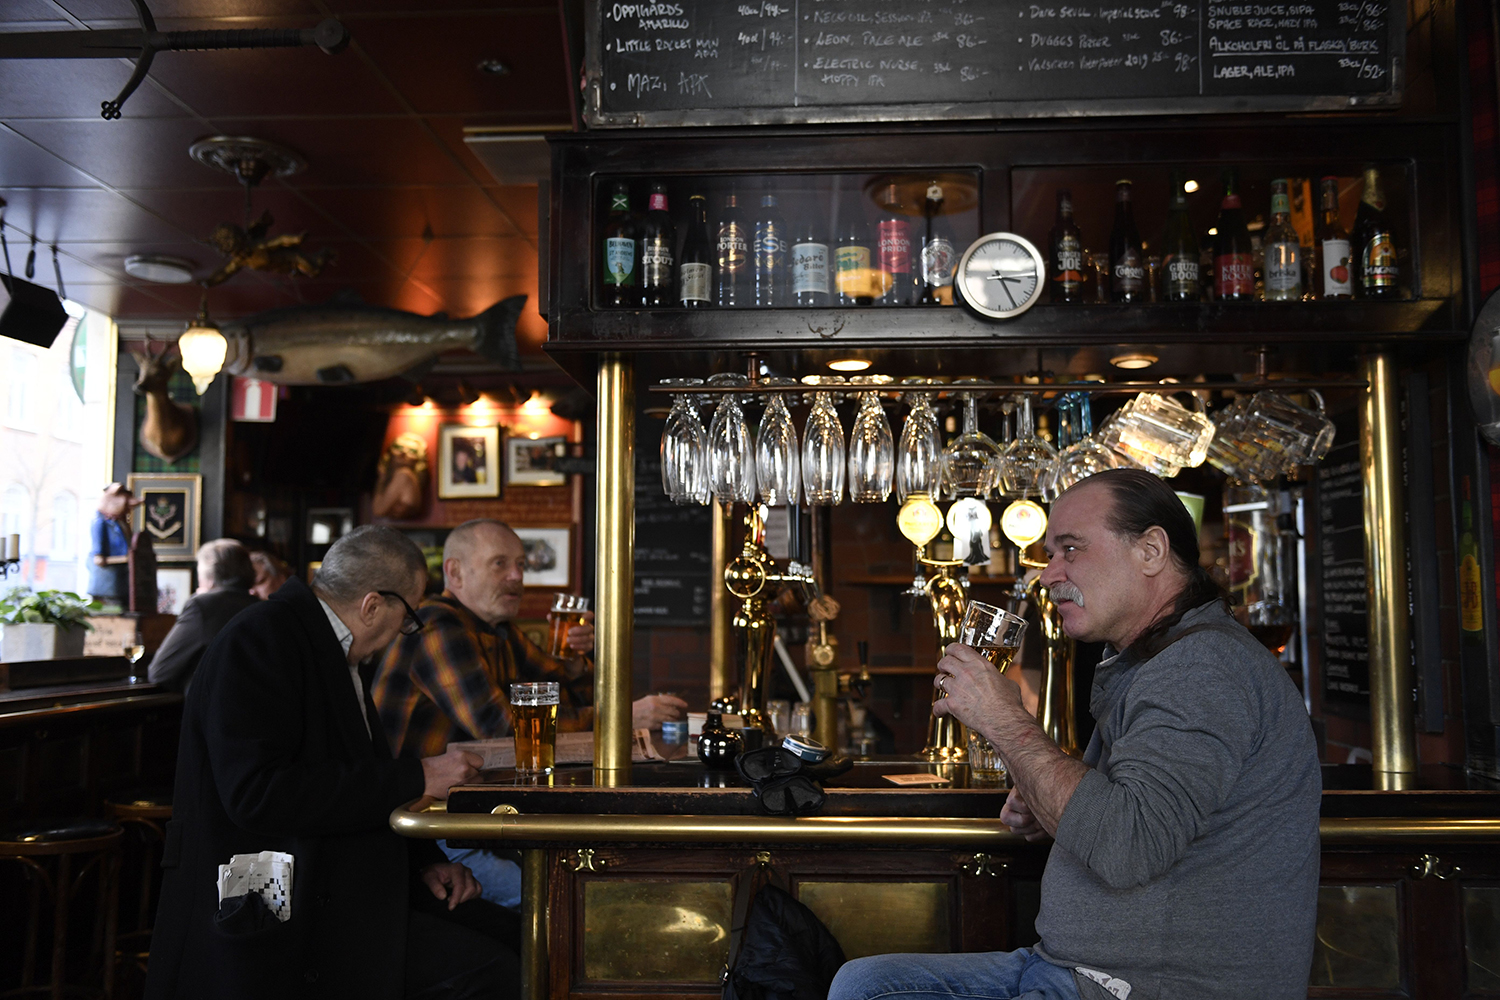 People gather for drinks at the Half Way Inn pub in central Stockholm on March 23. Sweden is the only democratic country in the world that does not recommend masks as the coronavirus pandemic continues.